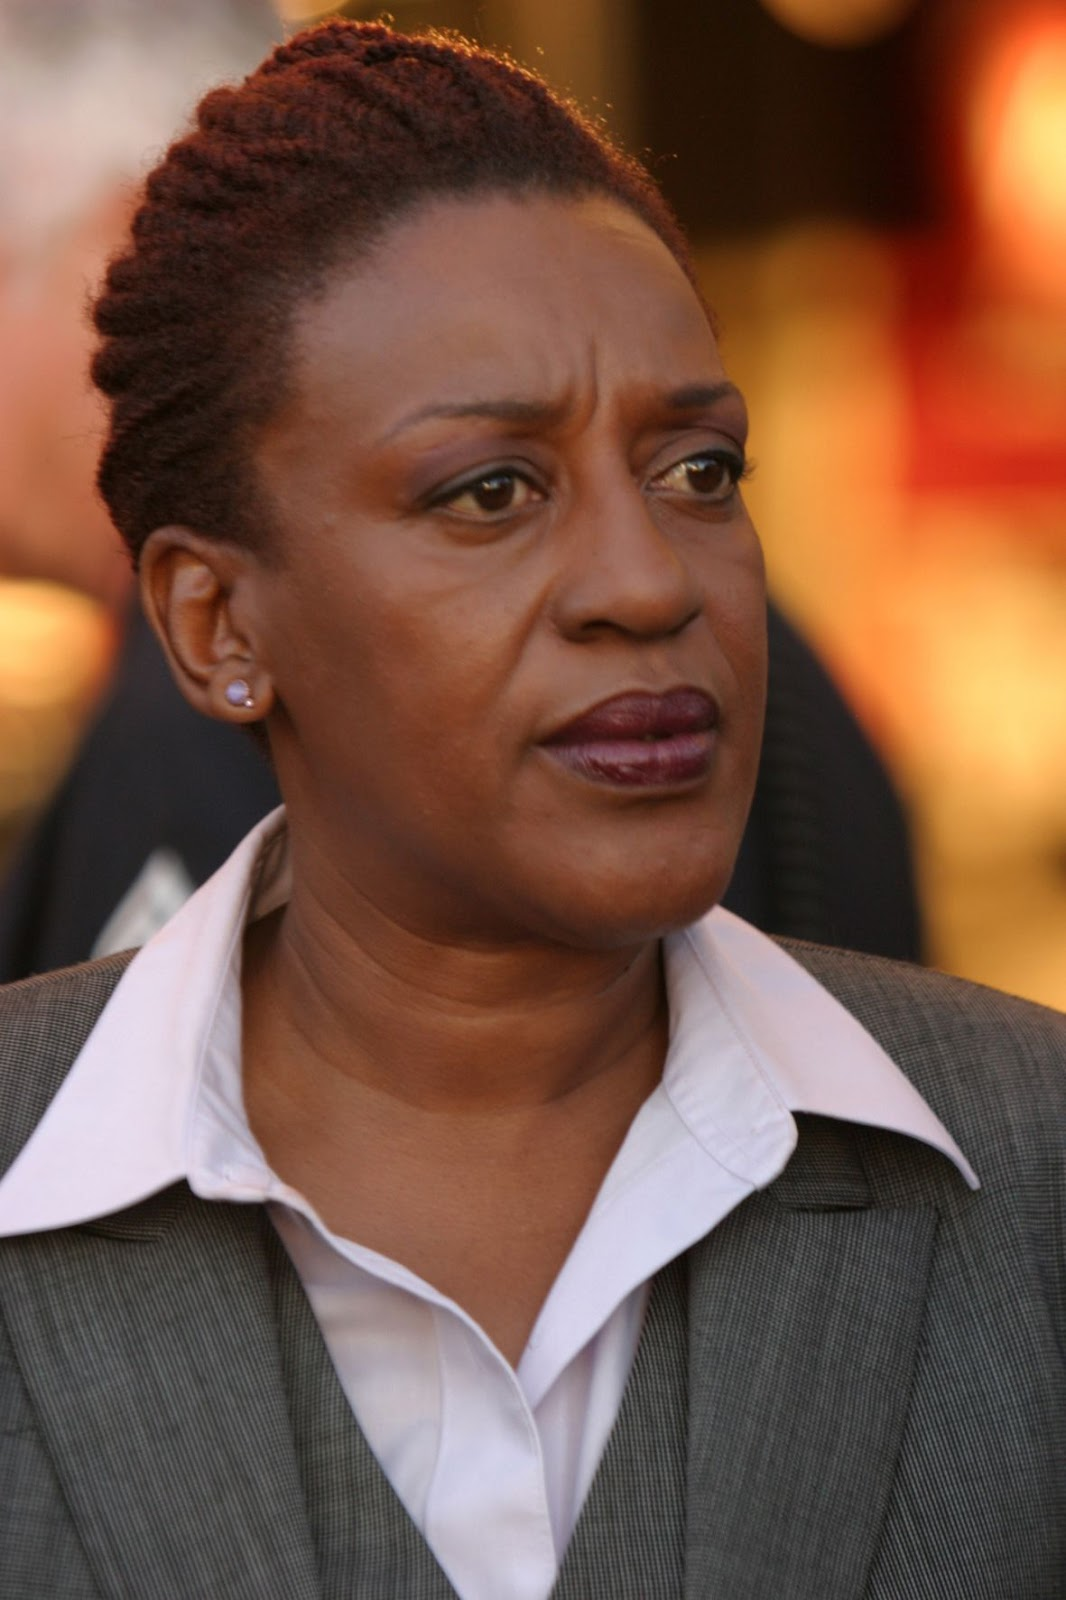 CCH Pounder Photos   Tv Series Posters and Cast